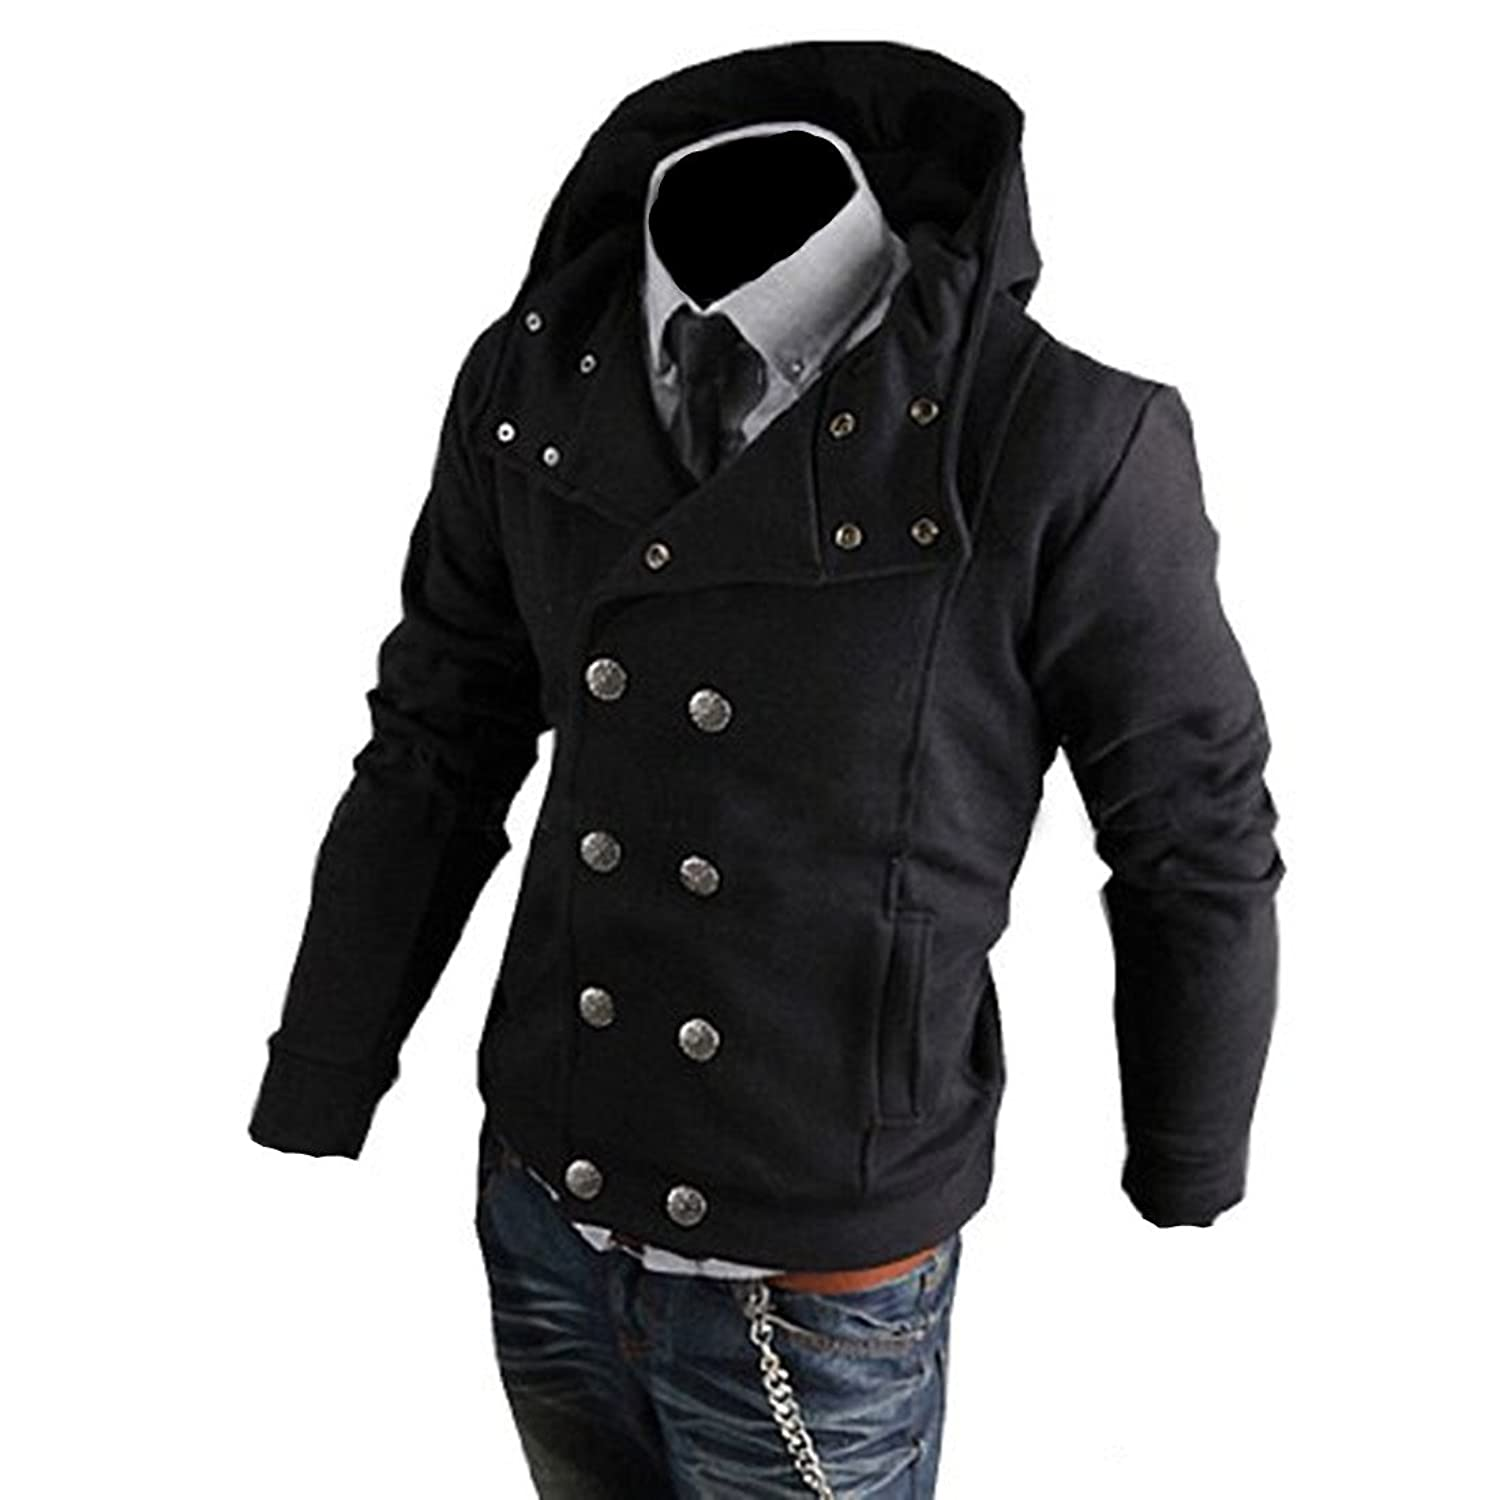 Amoin Men Casual Fashion Zipper Slim Fit Hoodies Jackets Coats Partiss Mens Double Breasted